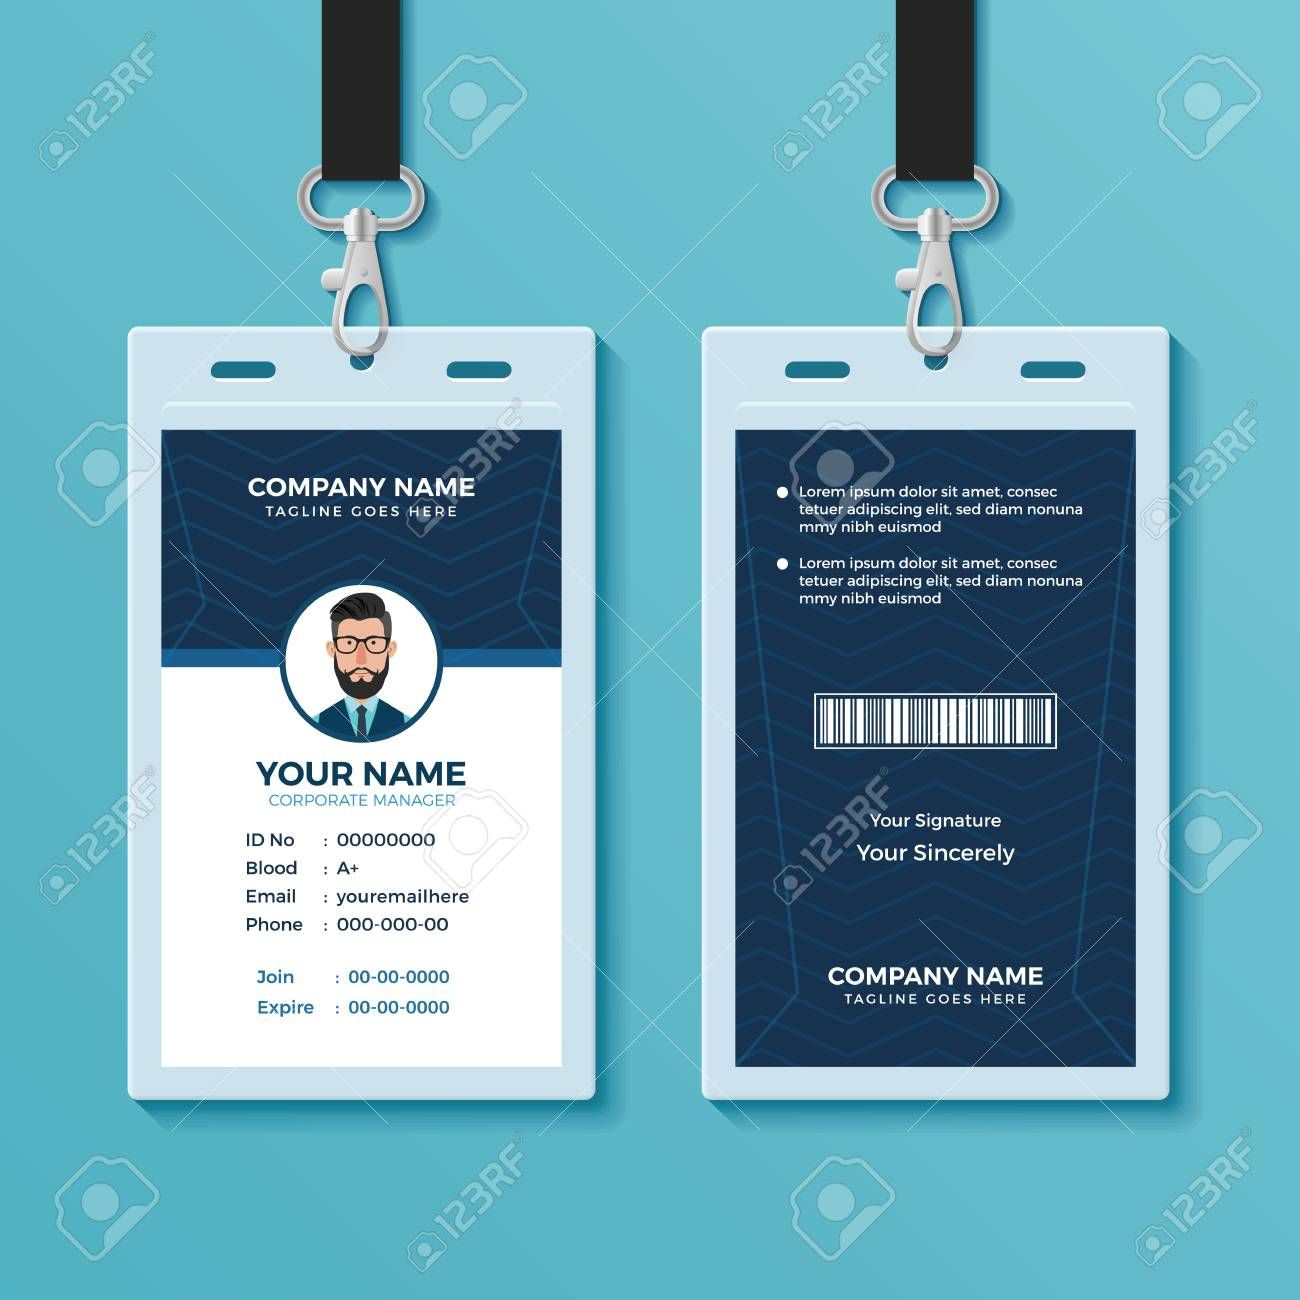 Modern And Clean Id Card Design Template For Portrait Id Card Template Best Business Templates Id Card Template Design Template Identity Card Design